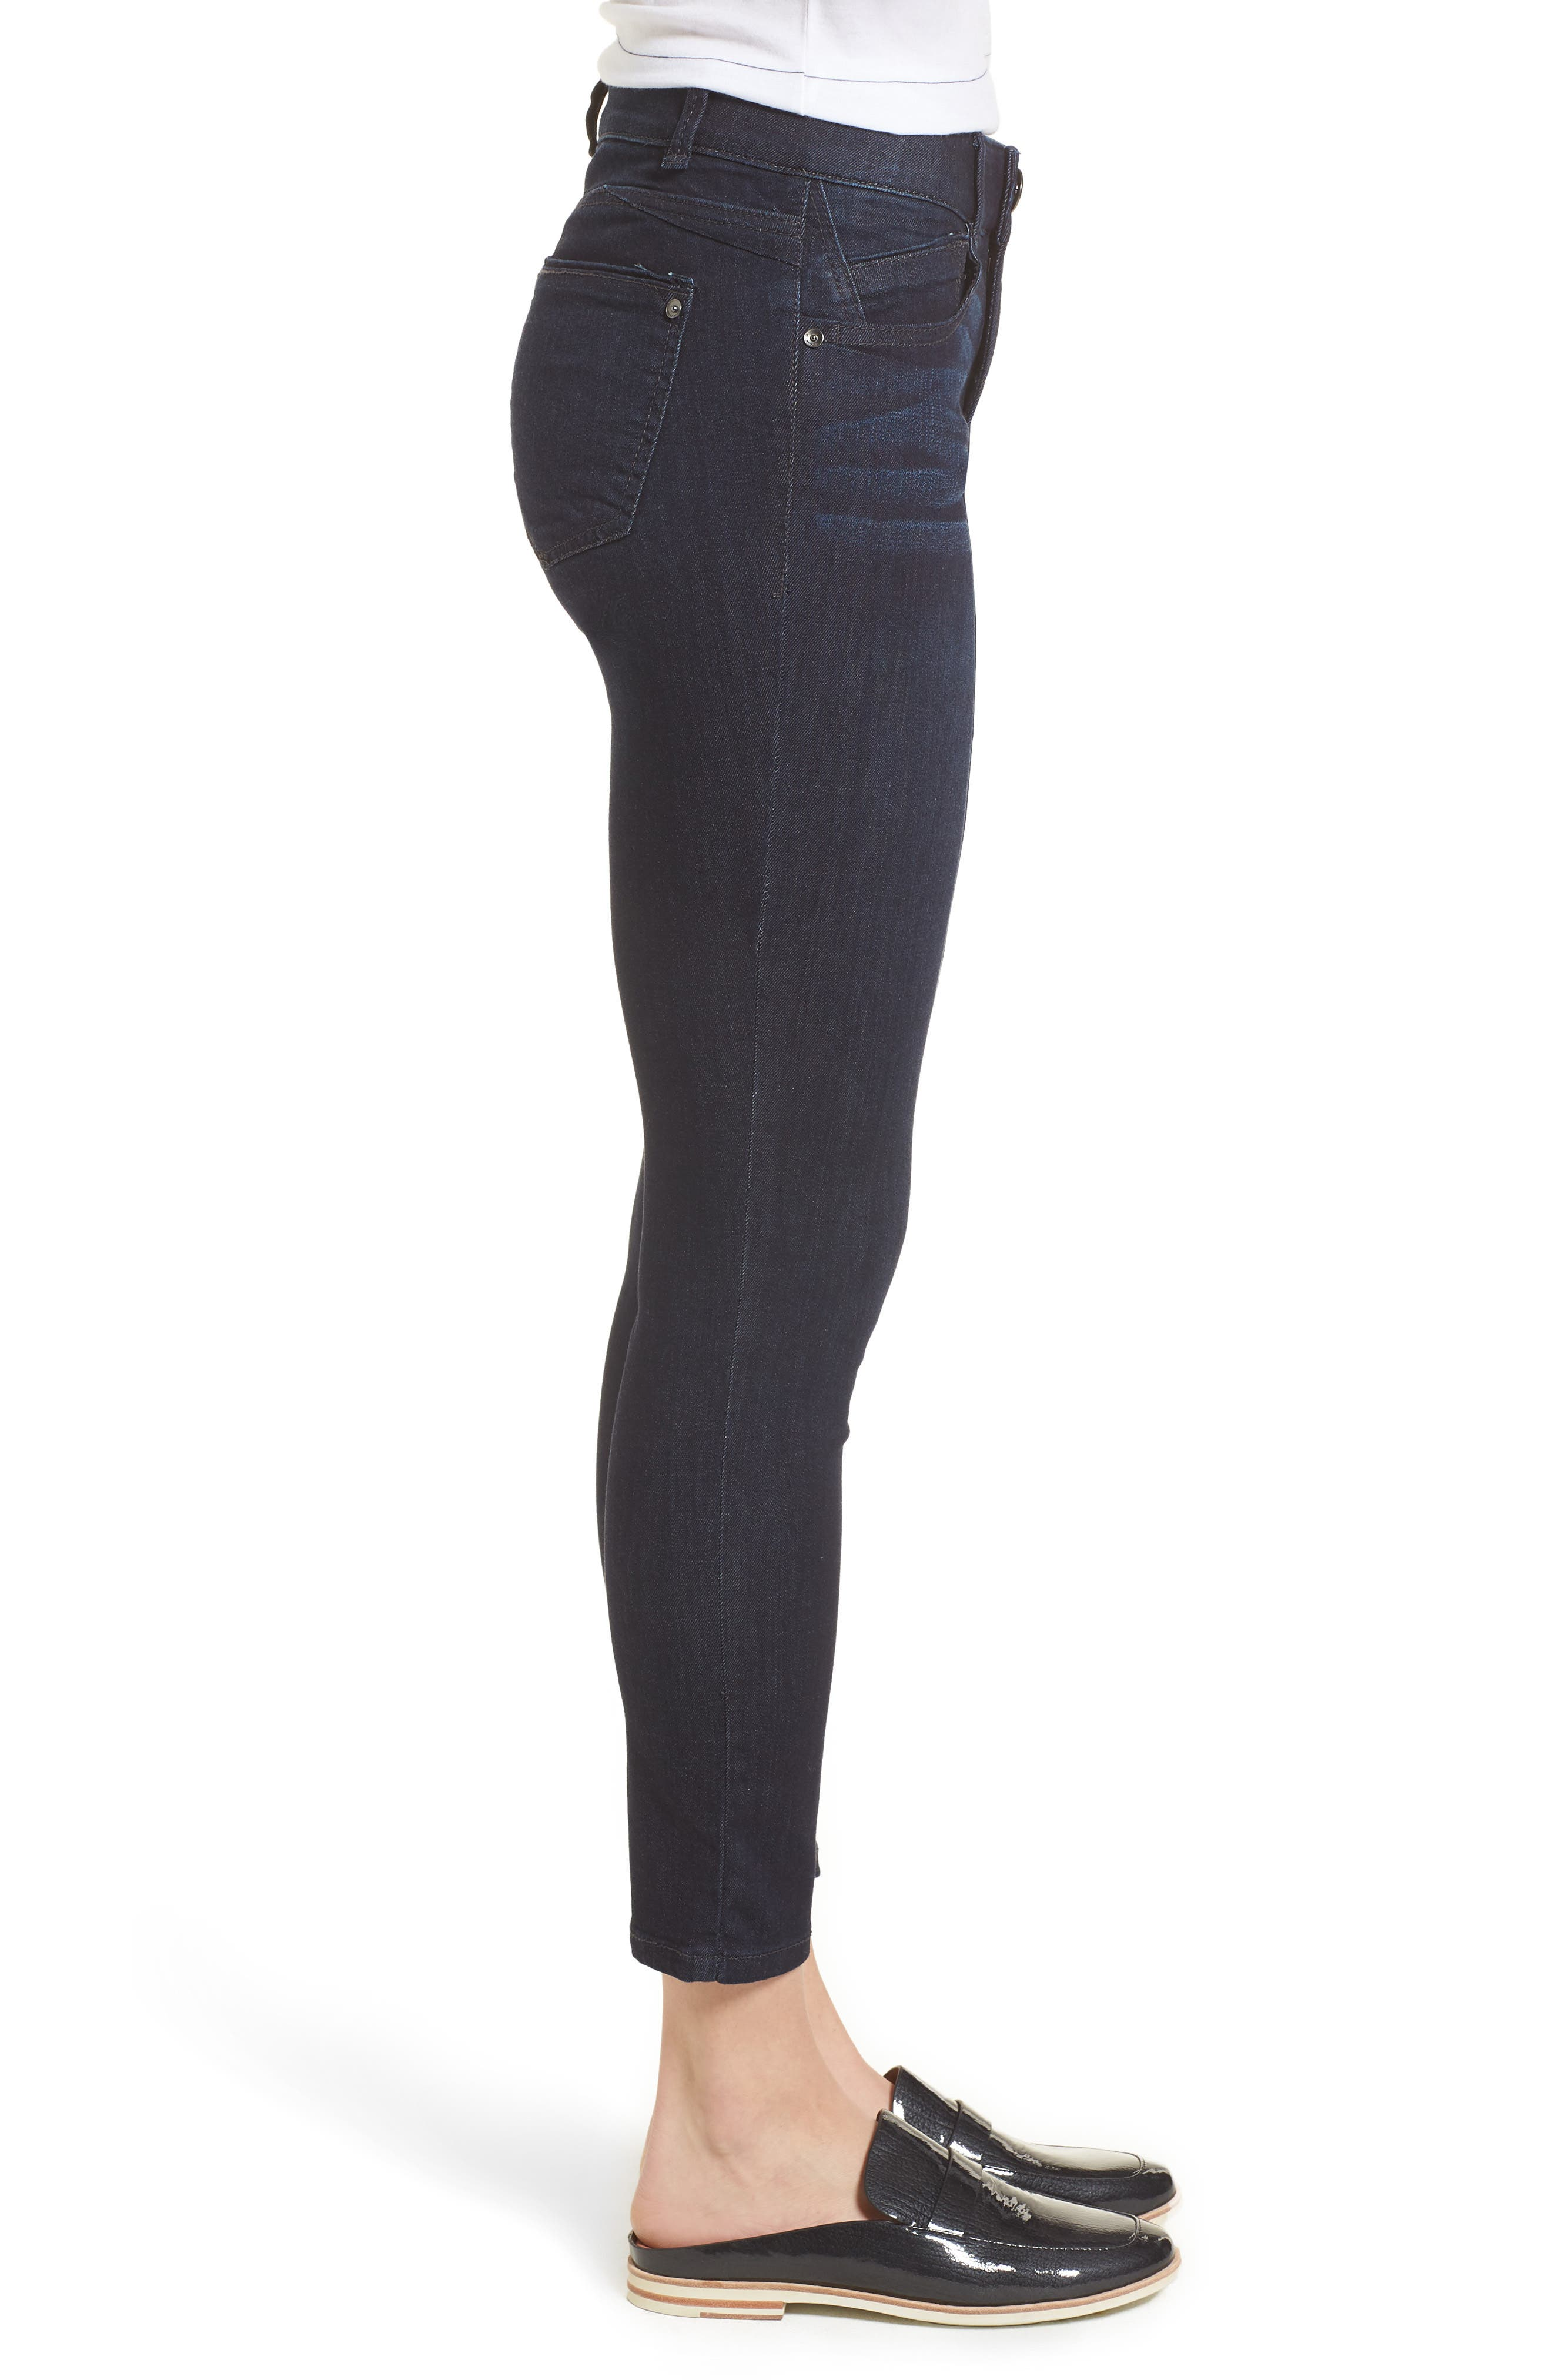 Ab-solution Ankle Skimmer Jeans,                             Alternate thumbnail 3, color,                             In- Indigo